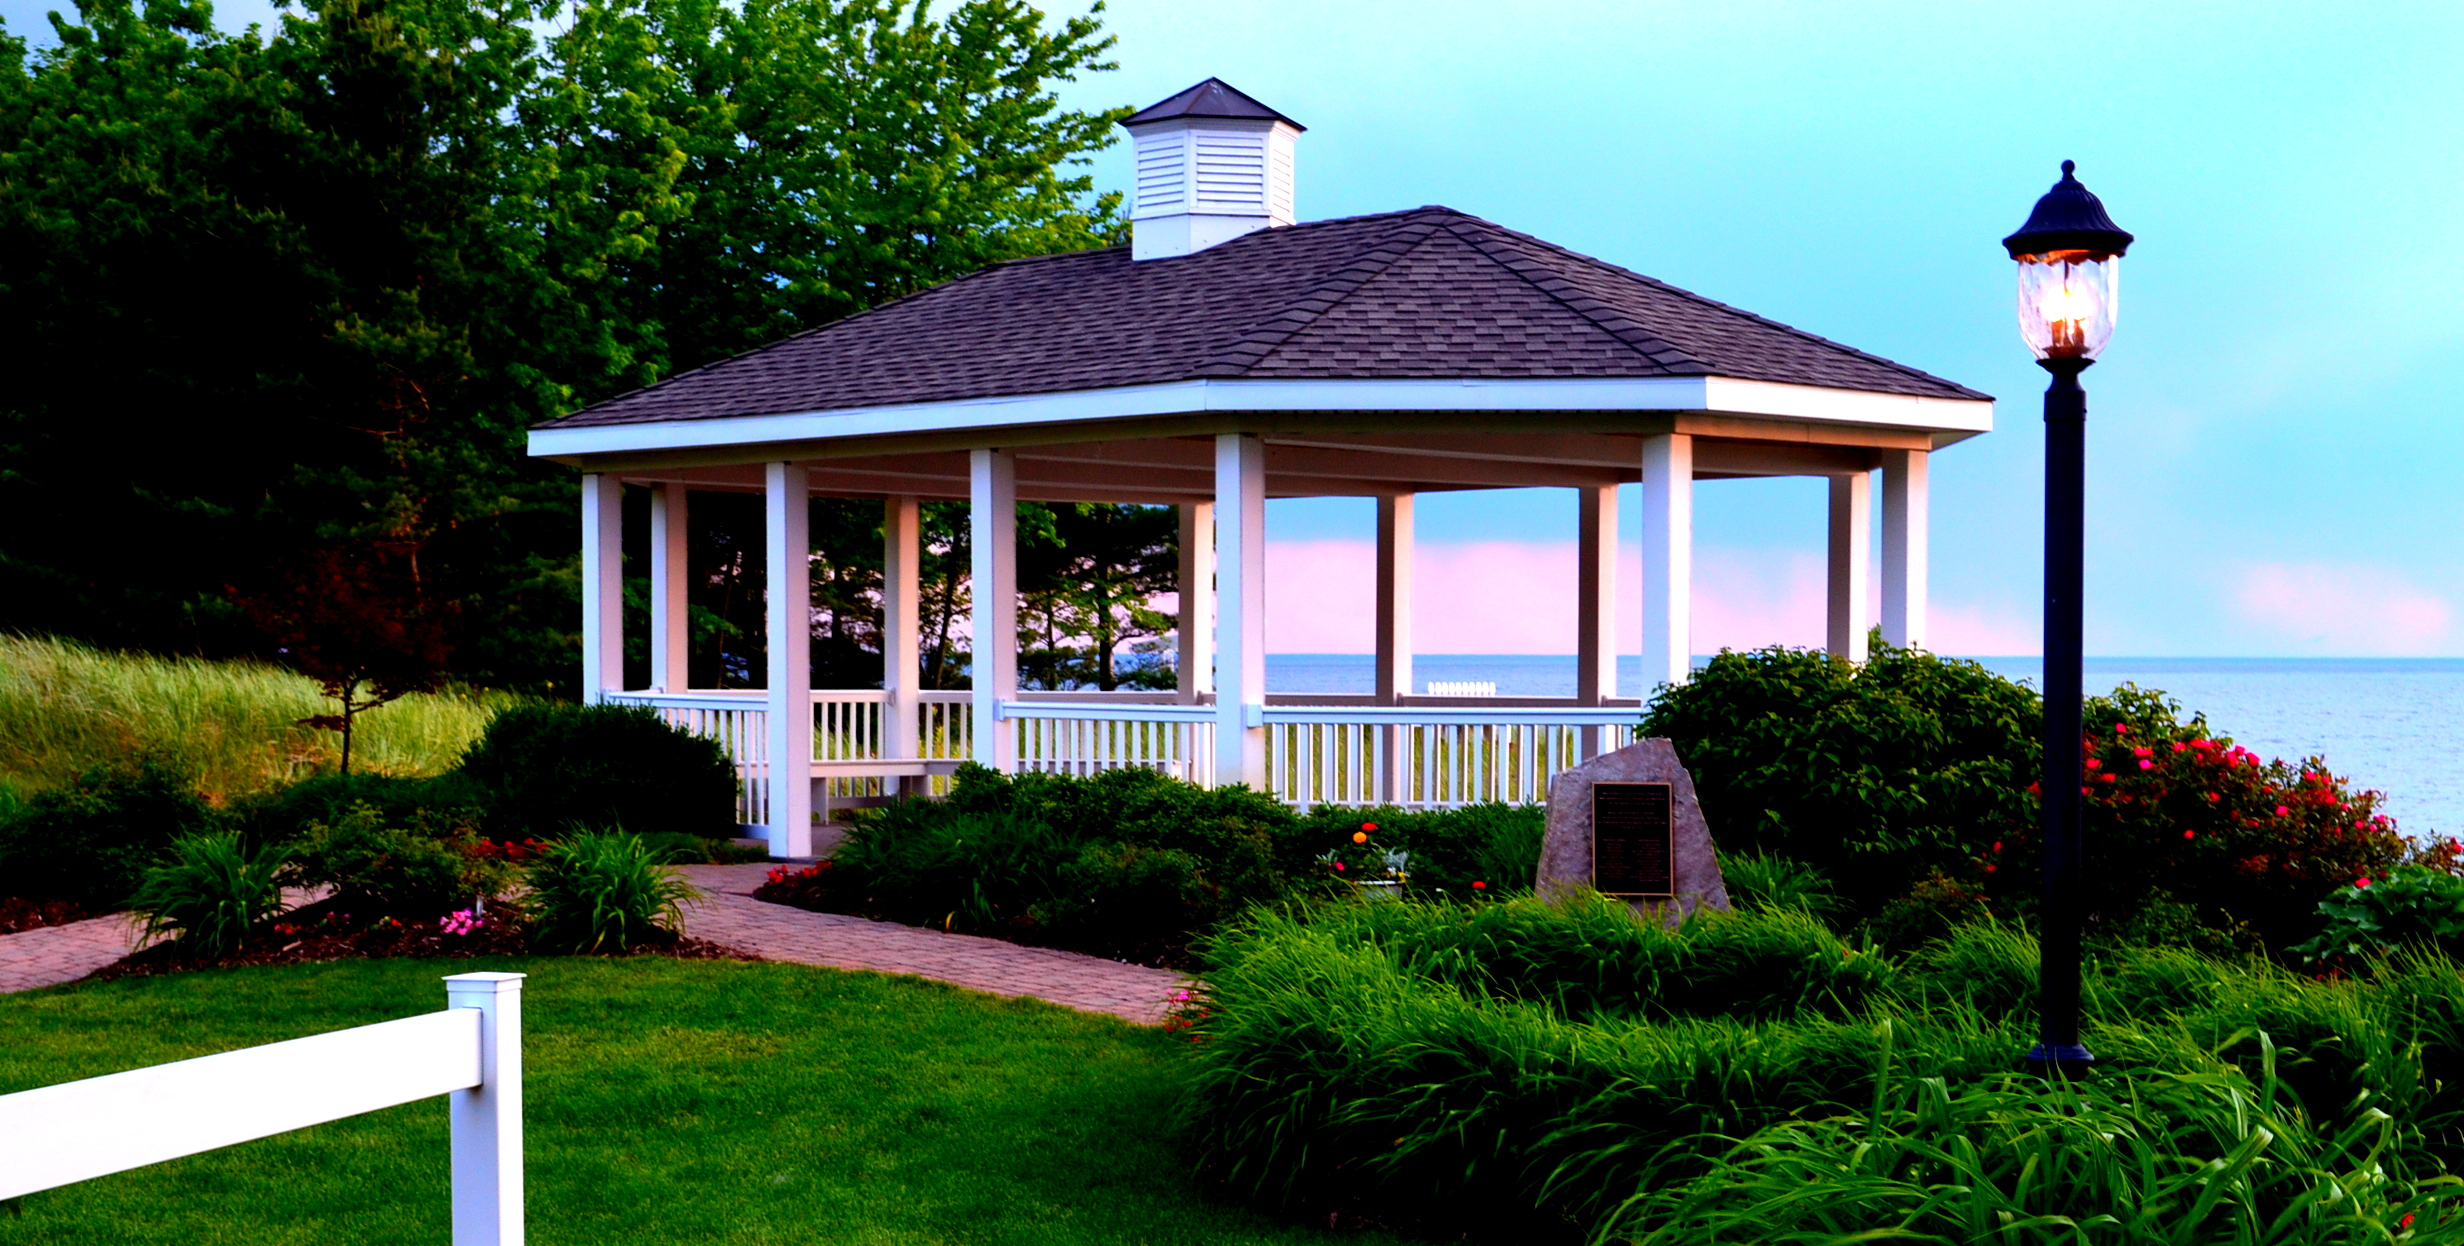 property lakeview northern grand cottages management michigan rentals village vacation haven cottage